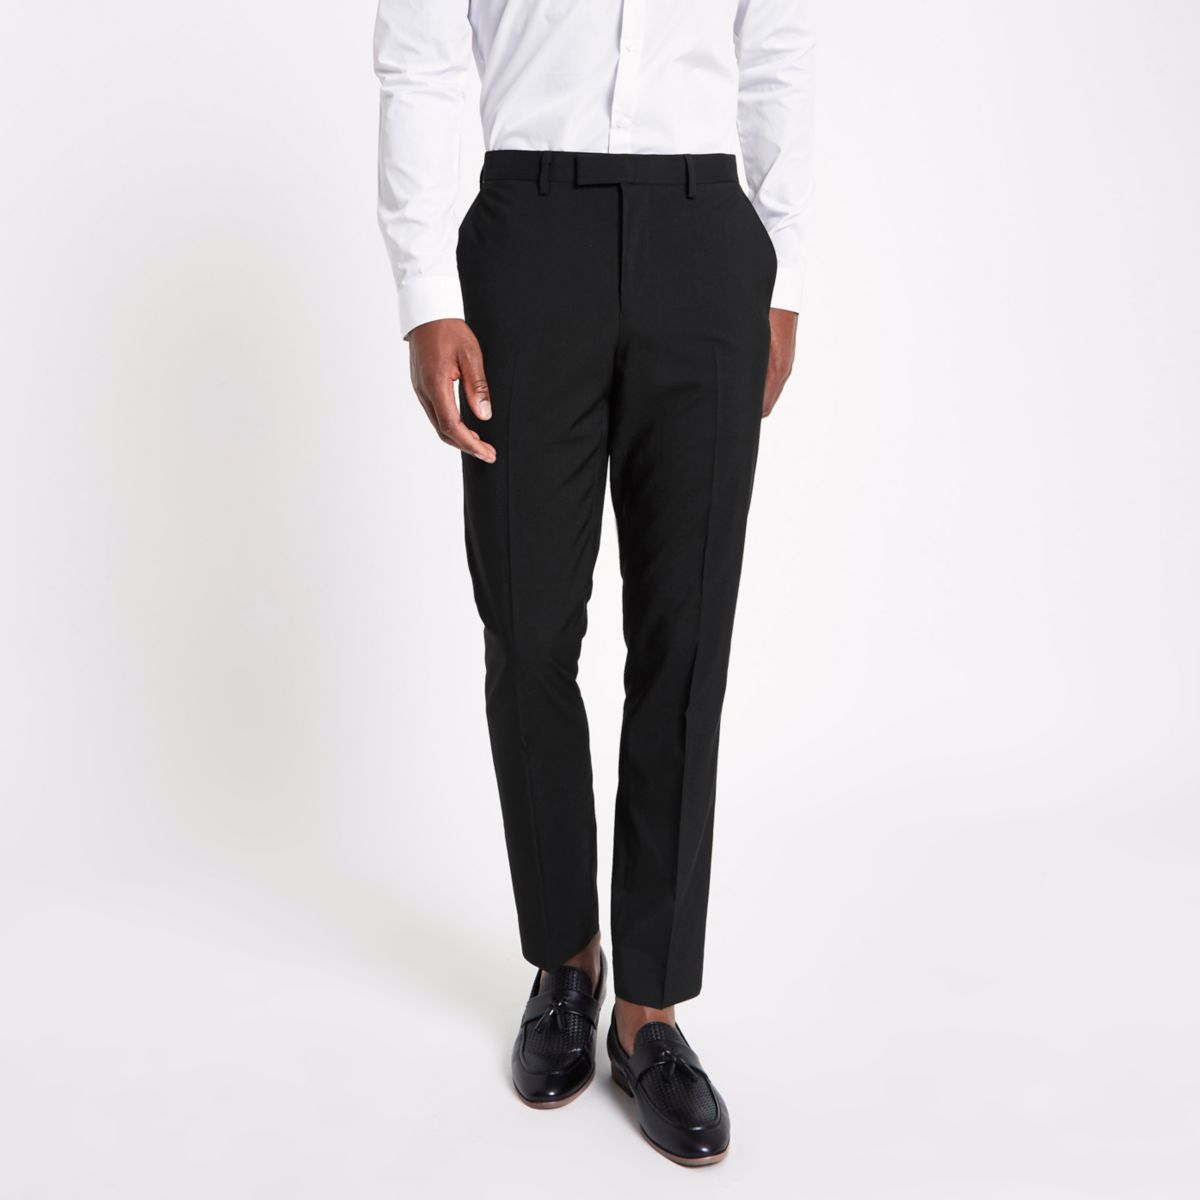 Pantalon de costume coupe slim noir